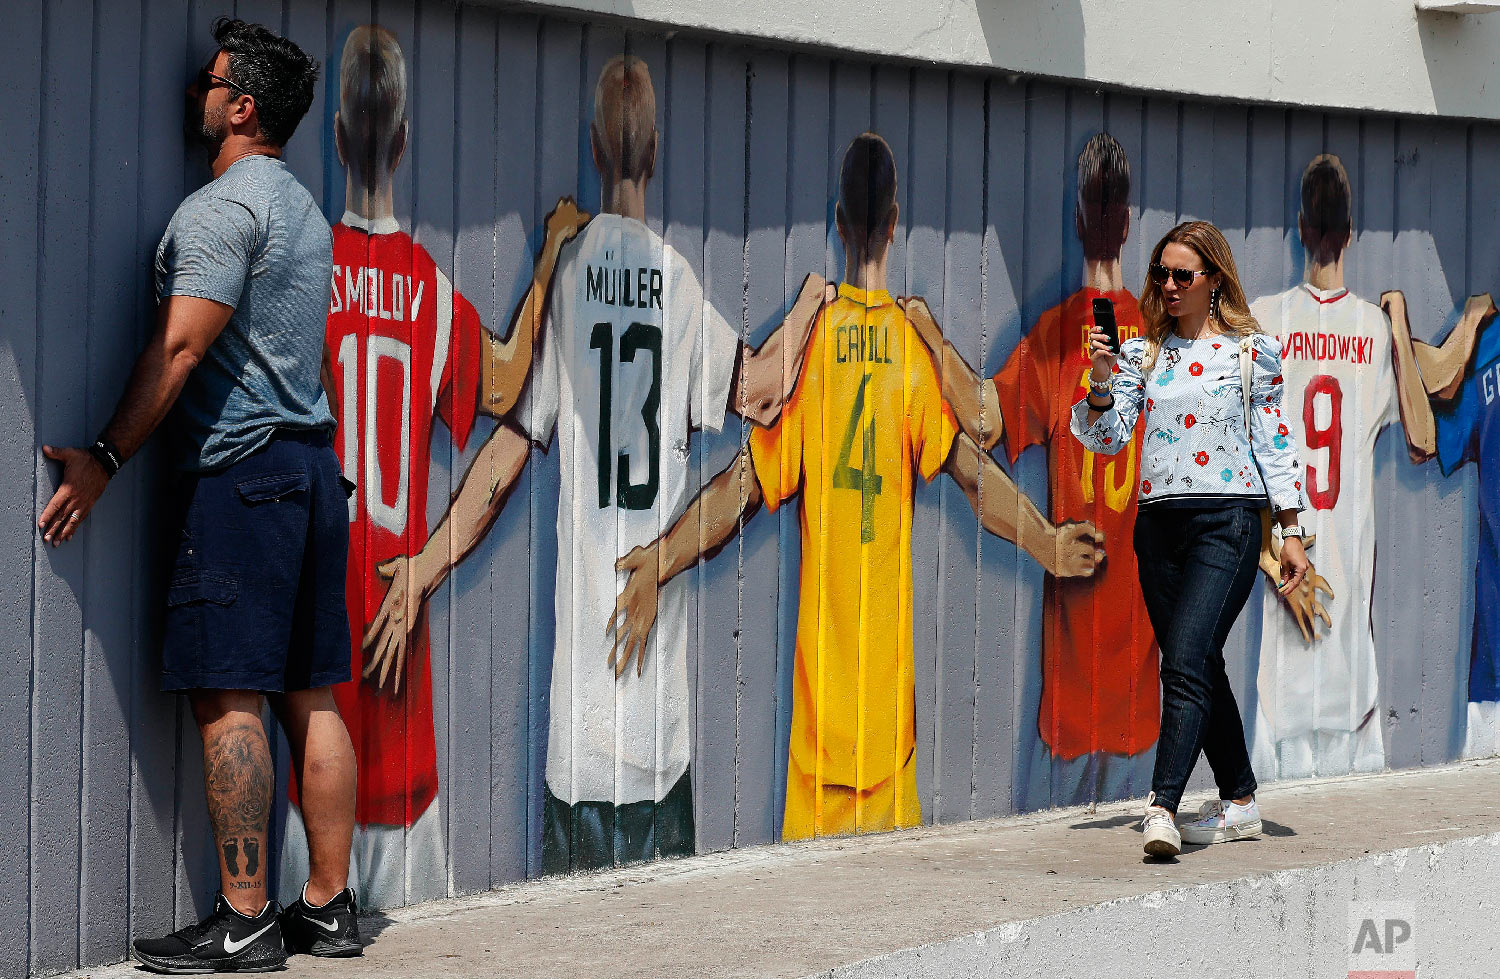 A soccer fan poses for pictures during the 2018 soccer World Cup in Kazan, Russia on Thursday, July 5, 2018. (AP Photo/Frank Augstein)